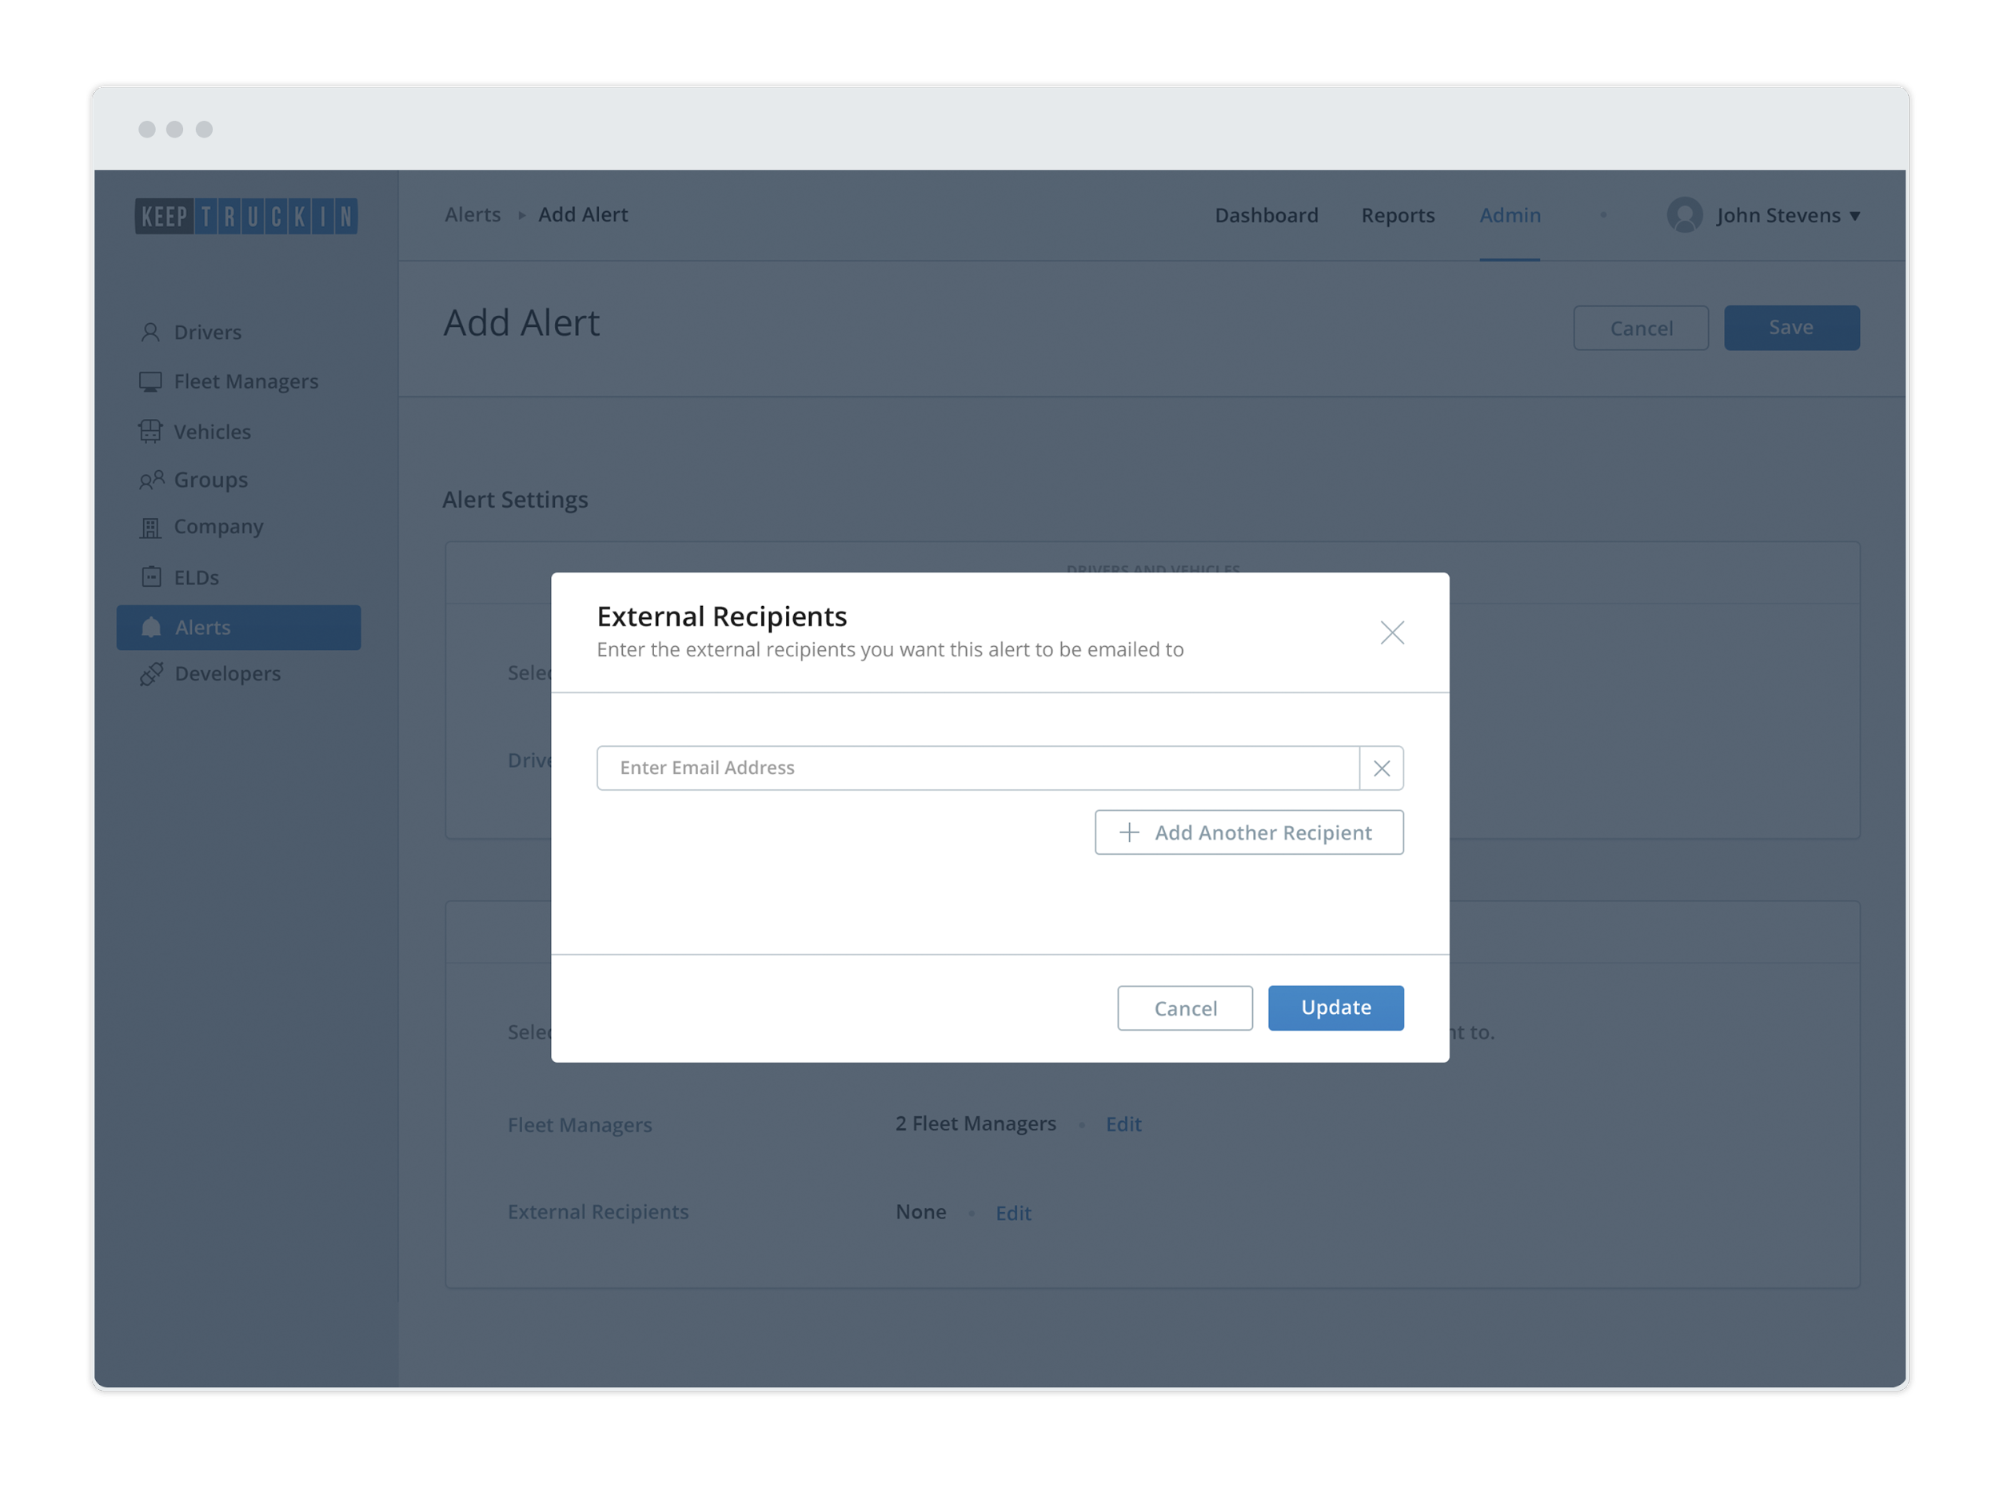 Sending driver alerts to people outside your organization via email addresses